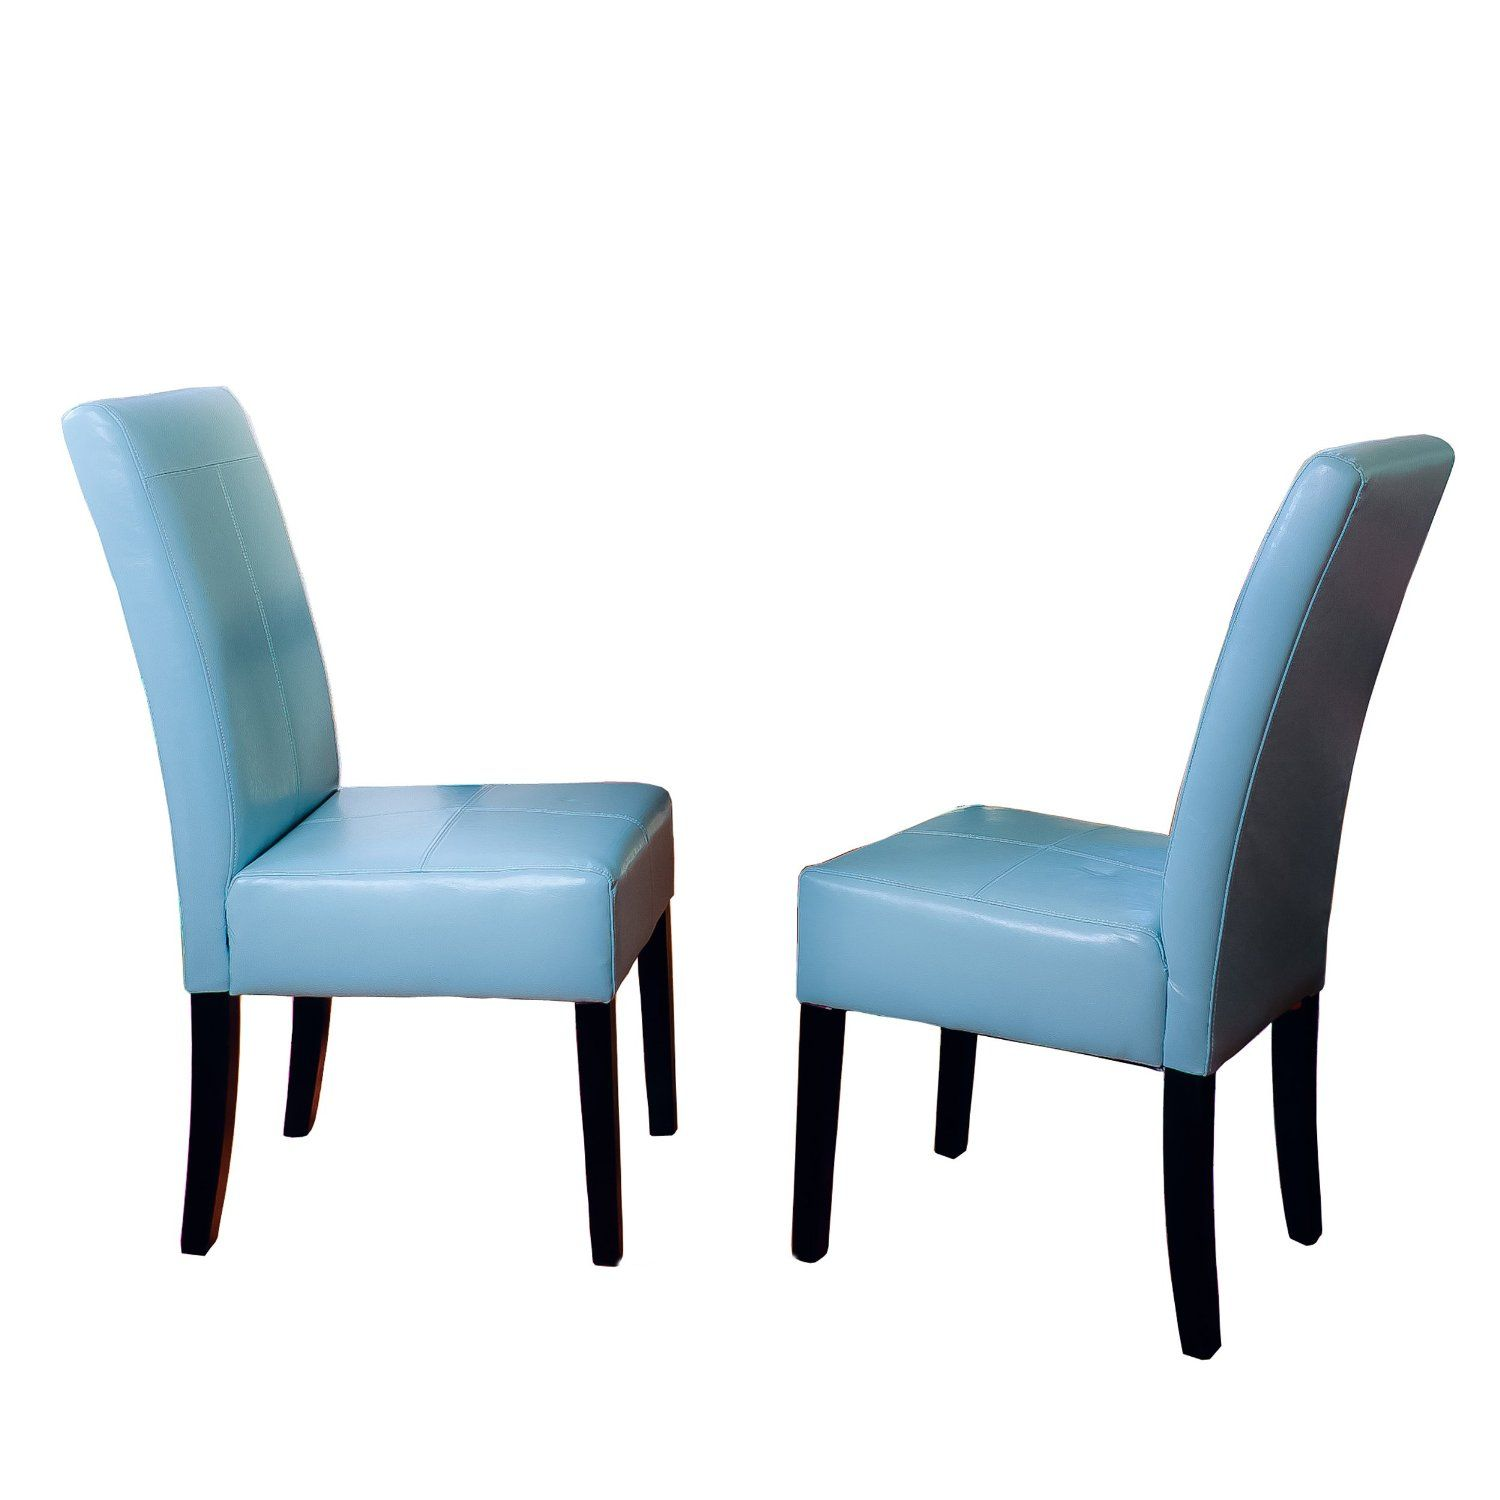 blue kitchen chairs delta sink faucets amazon com best t stitch leather dining chair 2 pack furniture decor